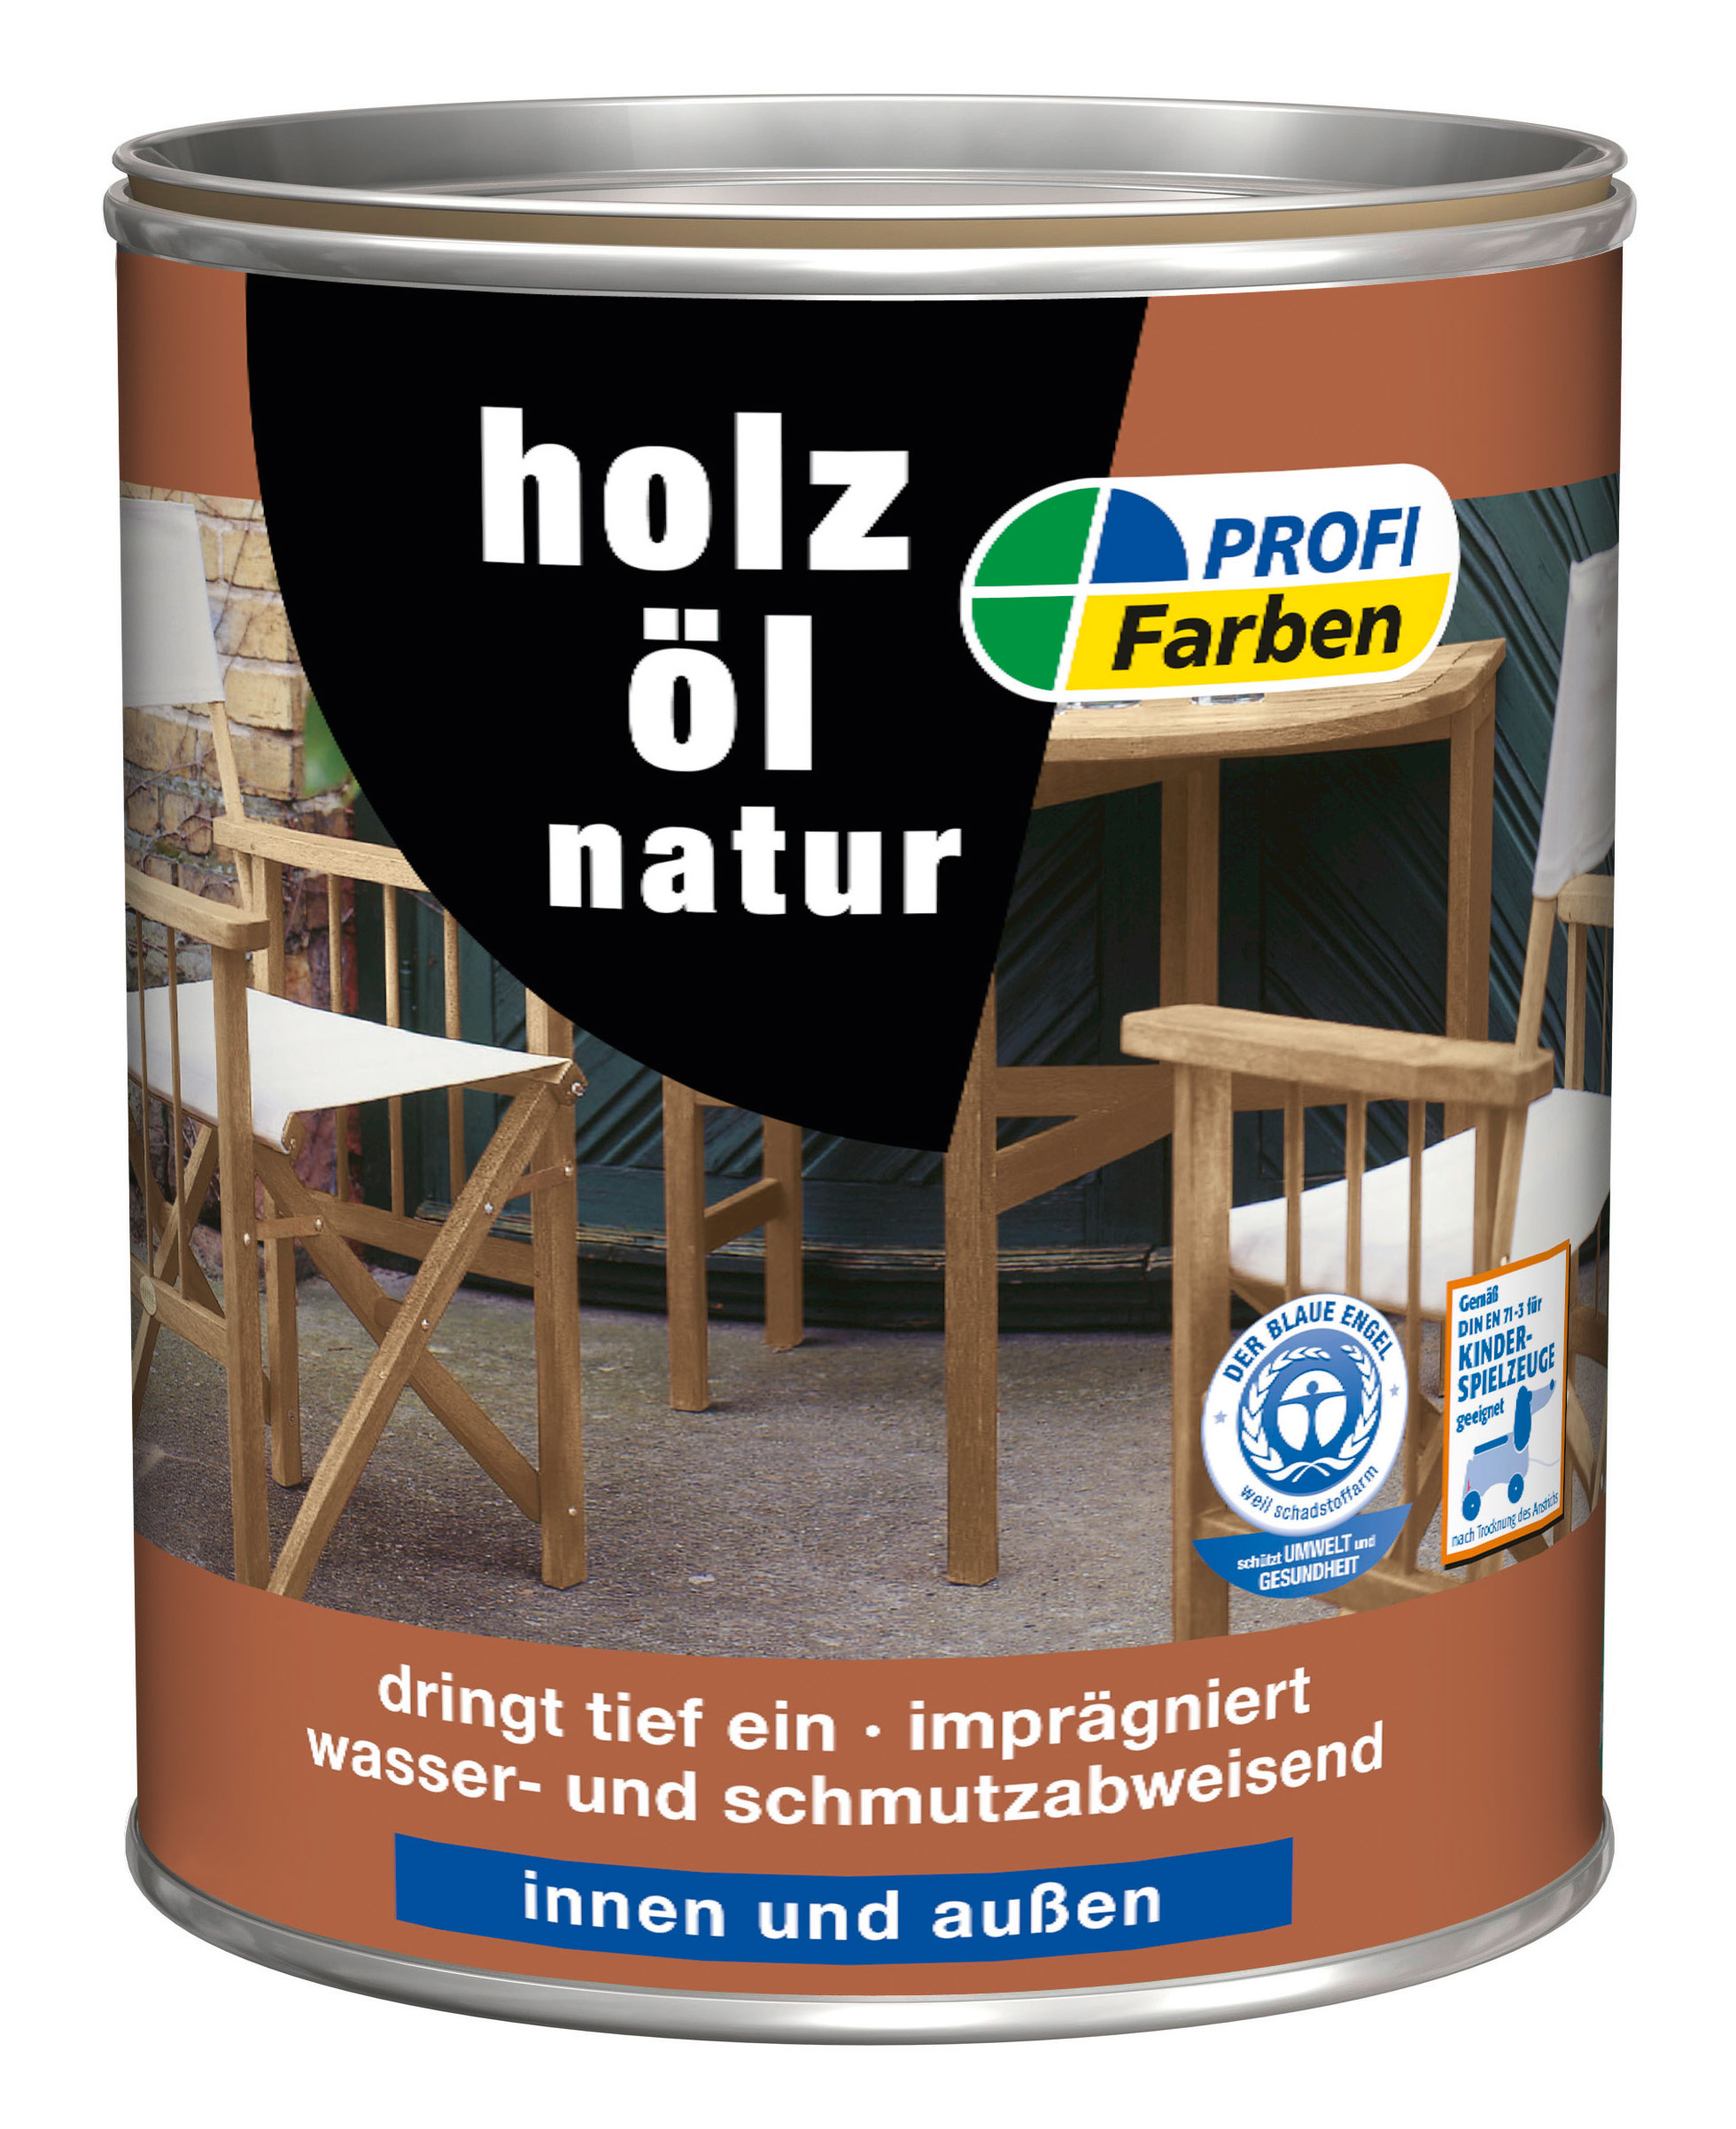 holz l profi farben acryl holz l natur 750 ml bei. Black Bedroom Furniture Sets. Home Design Ideas